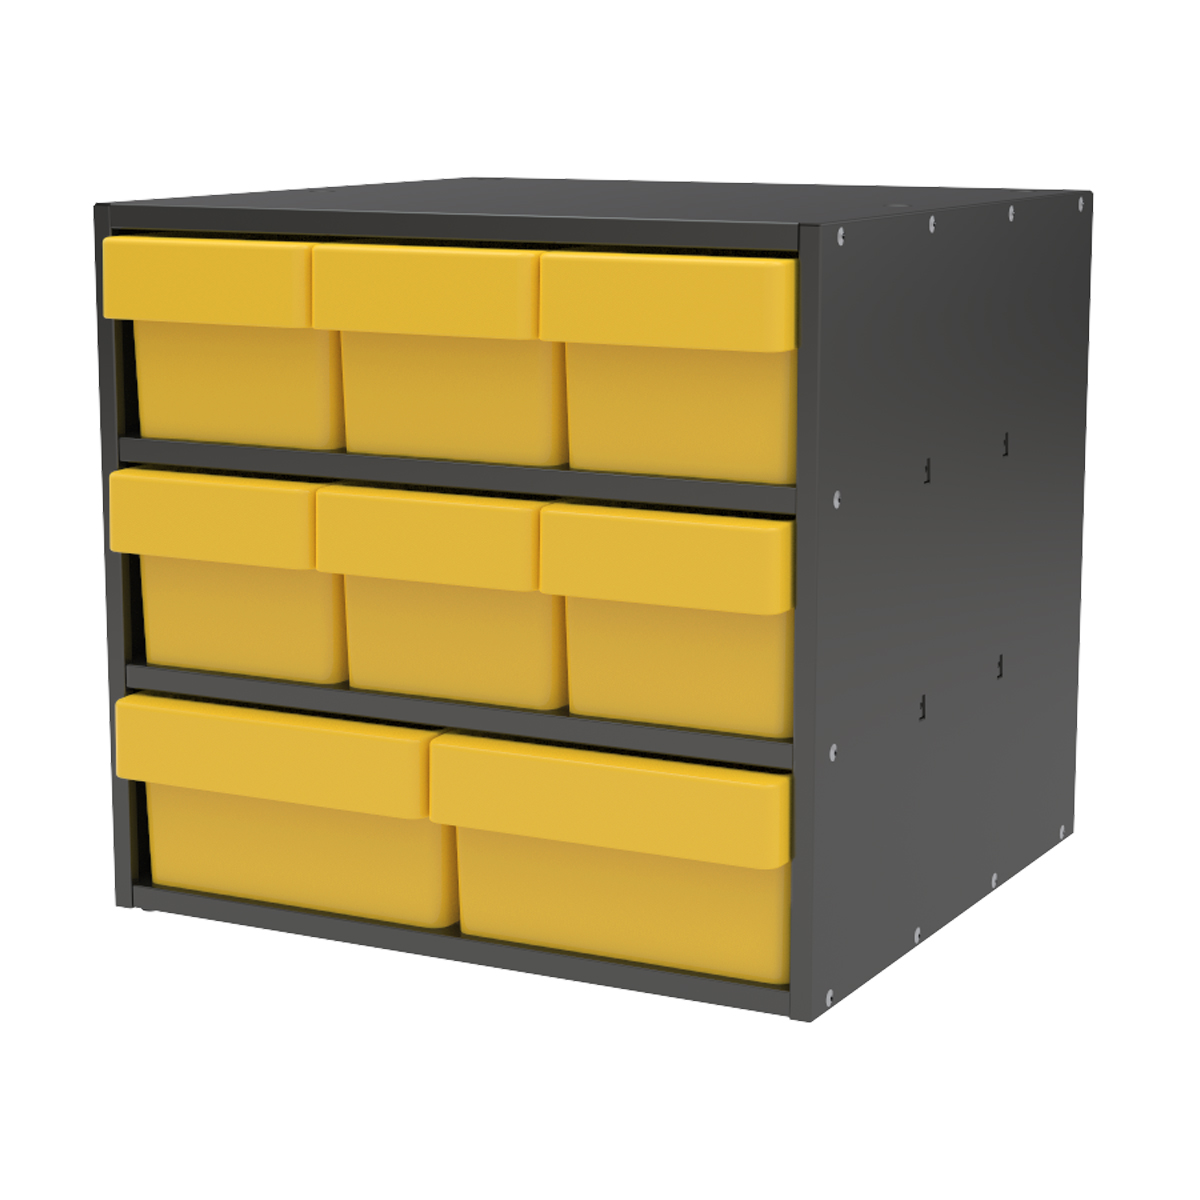 Item DISCONTINUED by Manufacturer.  Modular Cabinet, 18x17x16, 8 Drawers, Gray/Yellow (AD1817CASTYEL).  This item sold in carton quantities of 1.